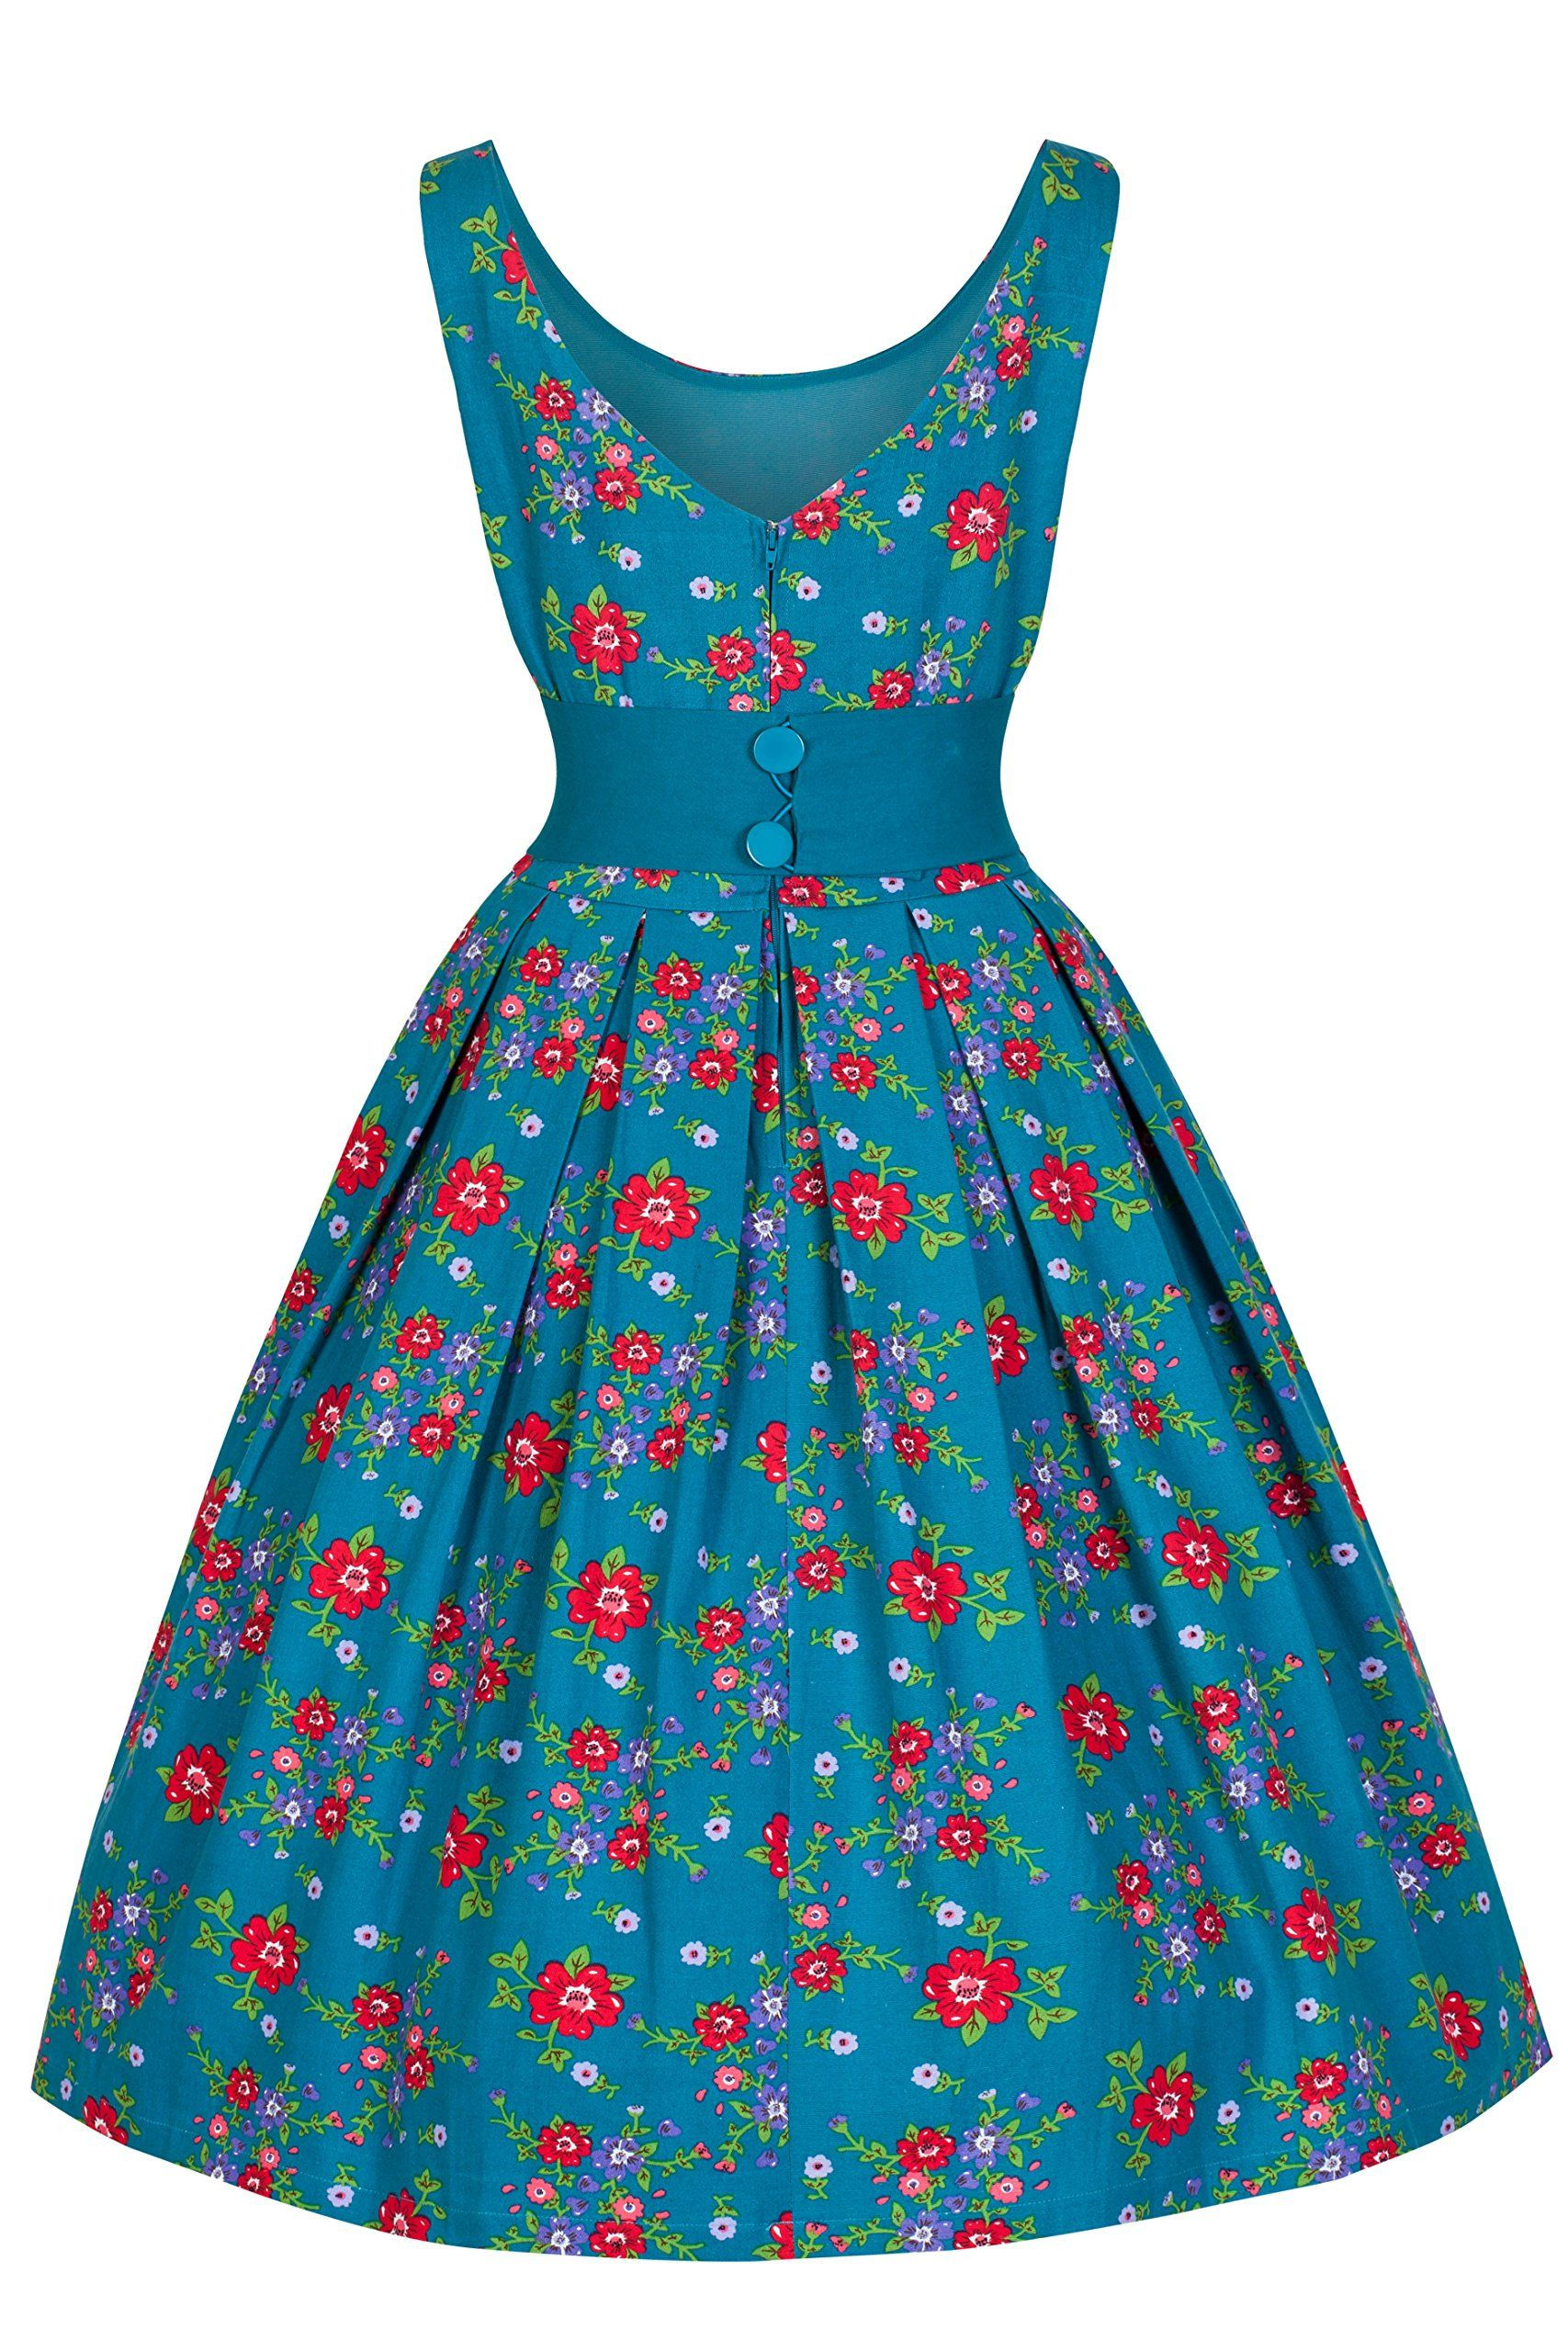 Vintage Garden Party Teal Dresses